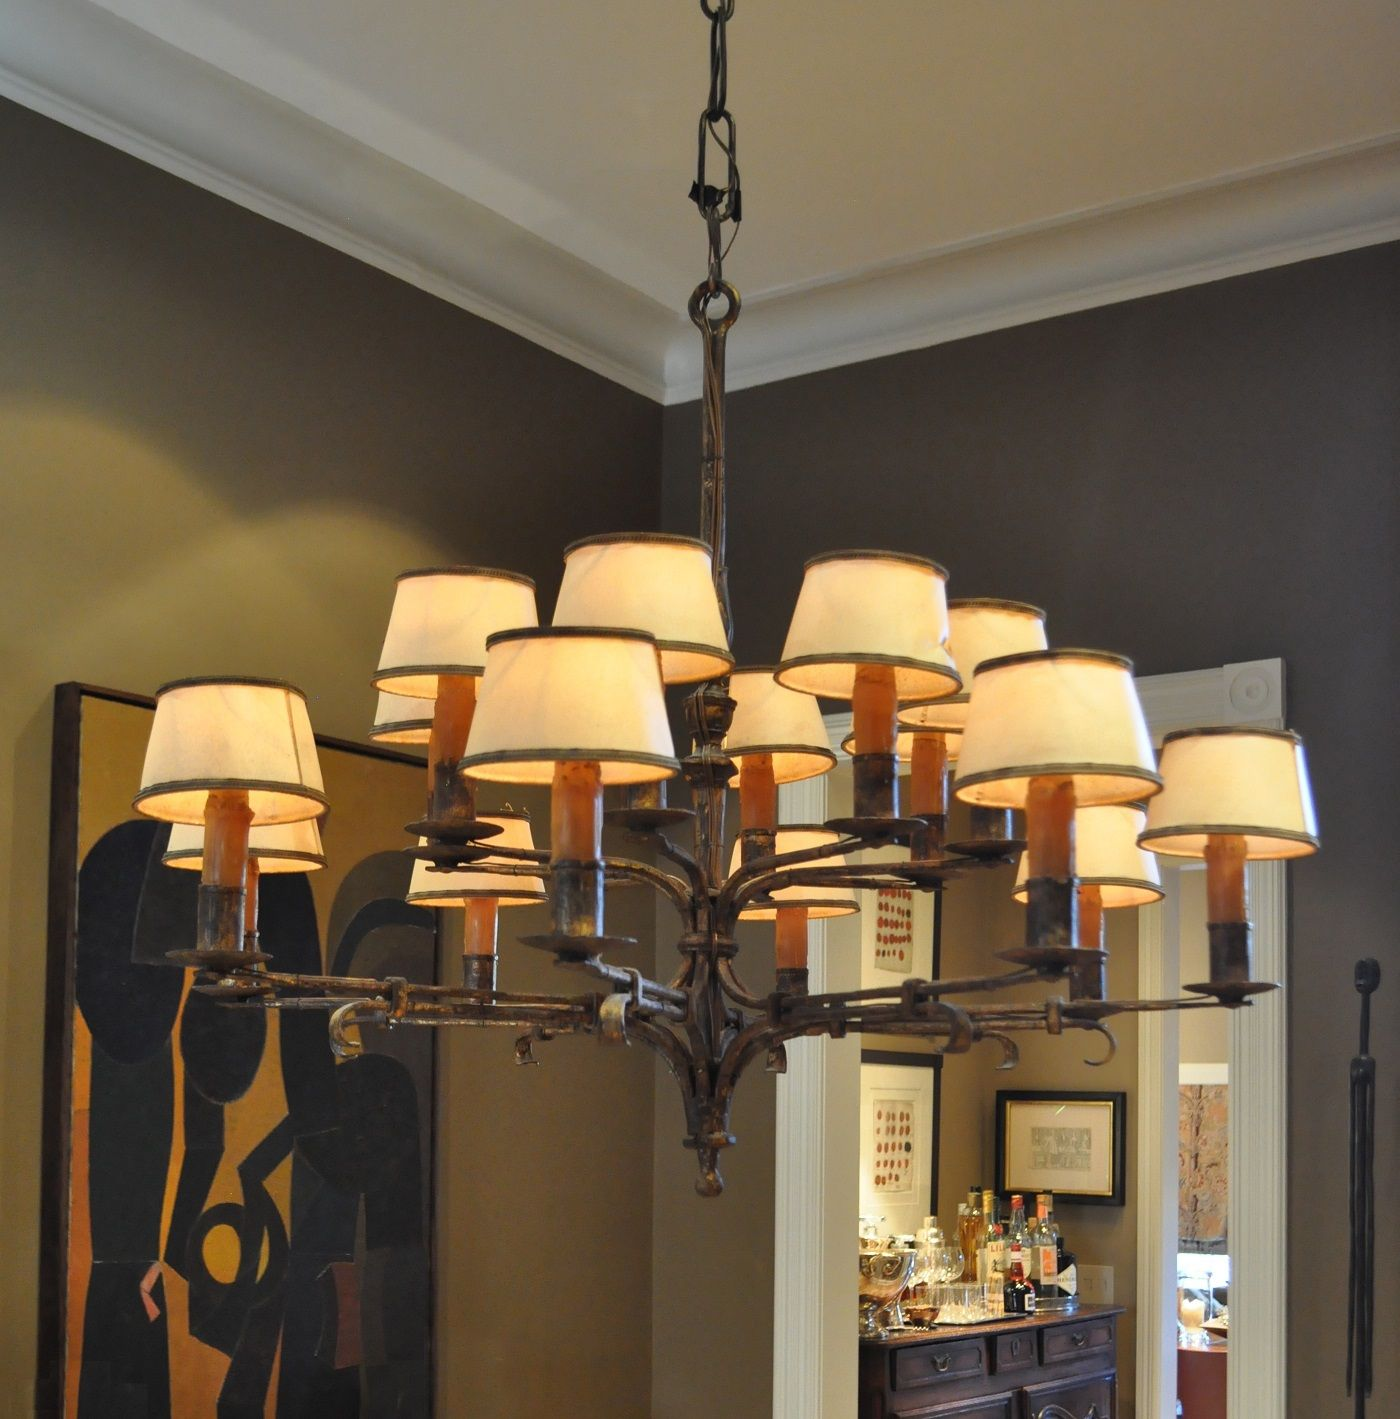 This Gilded Wrought Iron Chandelier Has Parchment Shades And Real Wax Candle Sleeves